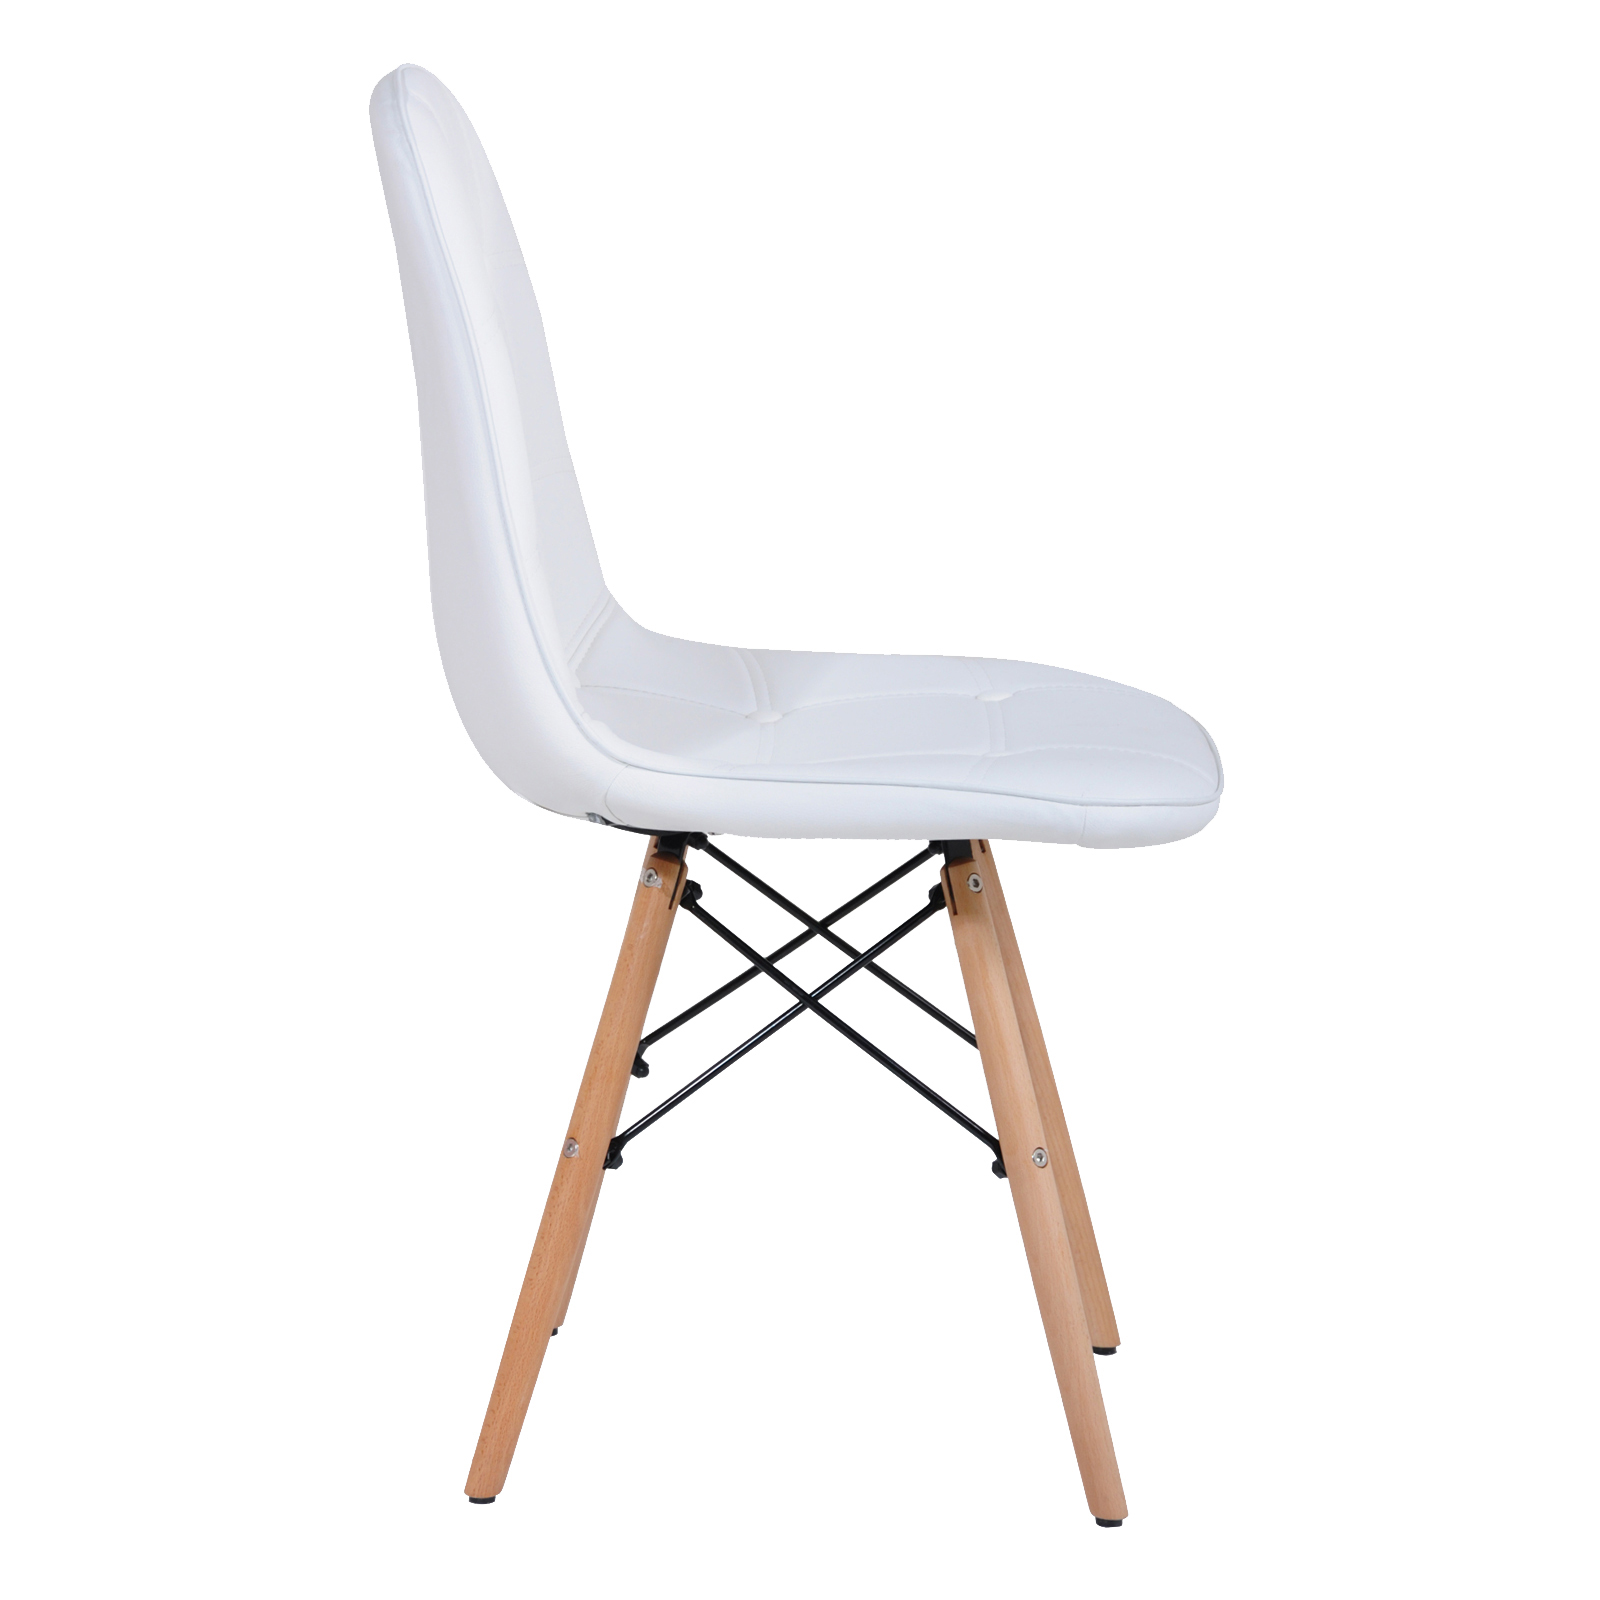 4 X Replica Eames Ellen PU Leather Dining Chair White Color EBay